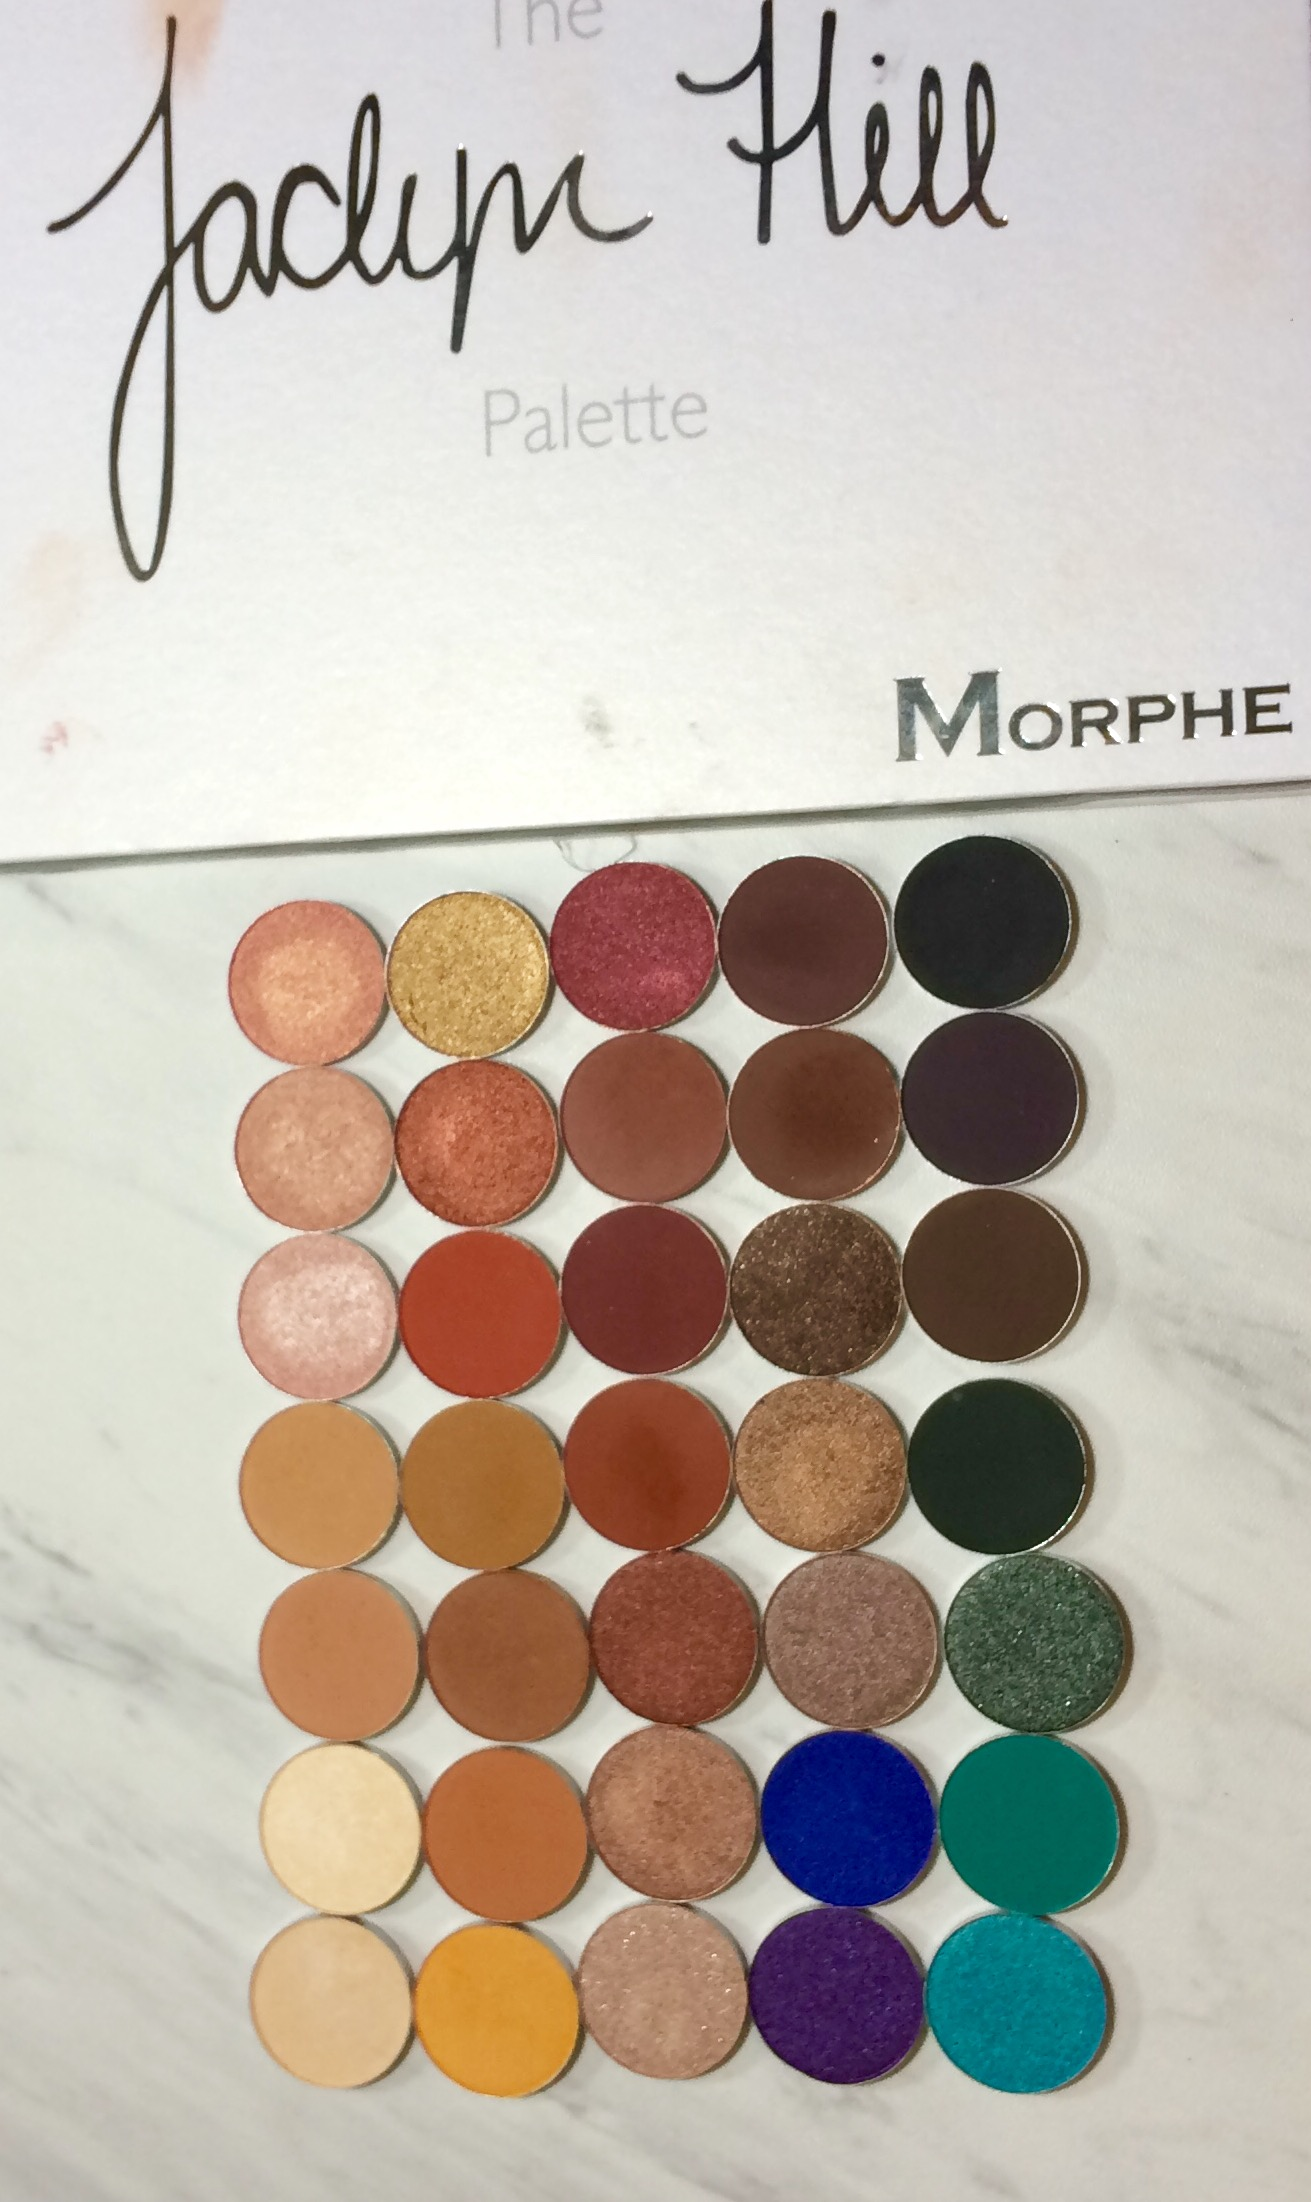 Jaclyn Hill Morphe Palette | Depotting & Thoughts